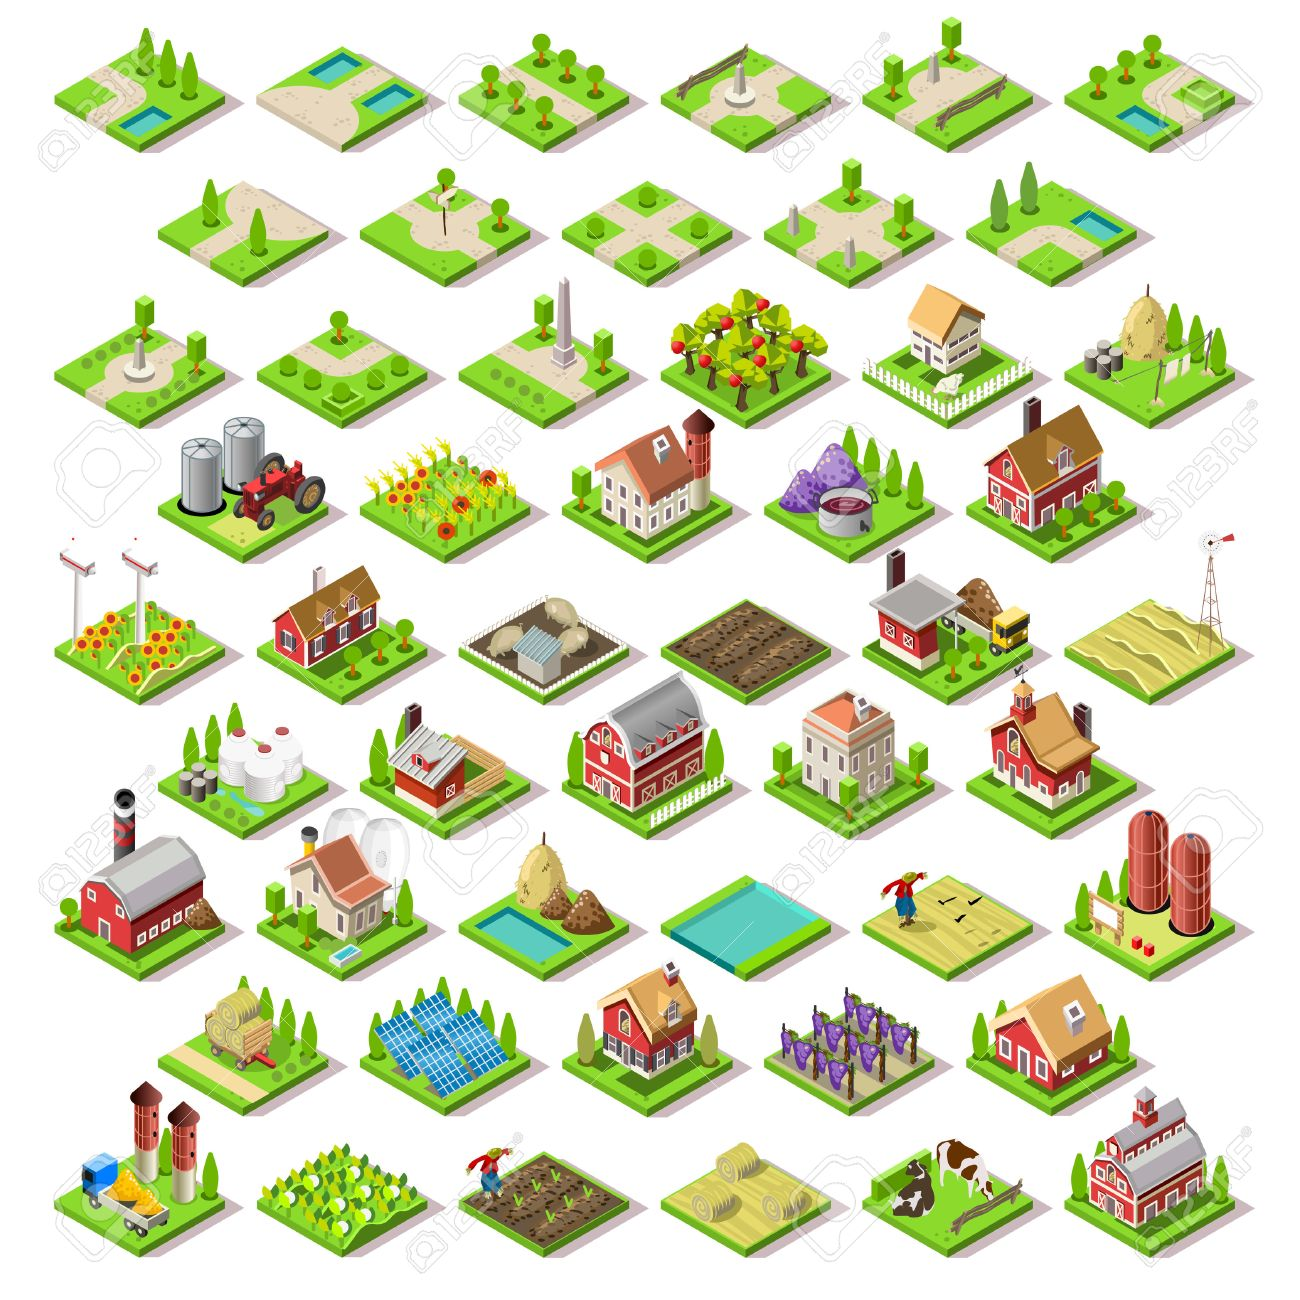 Flat 3d Isometric Farm Buildings City Map Icons Game Tiles Elements Set. NEW bright palette Rural Barn Buildings Isolated on White Vector Collection. Assemble Your Own 3D World - 51804971